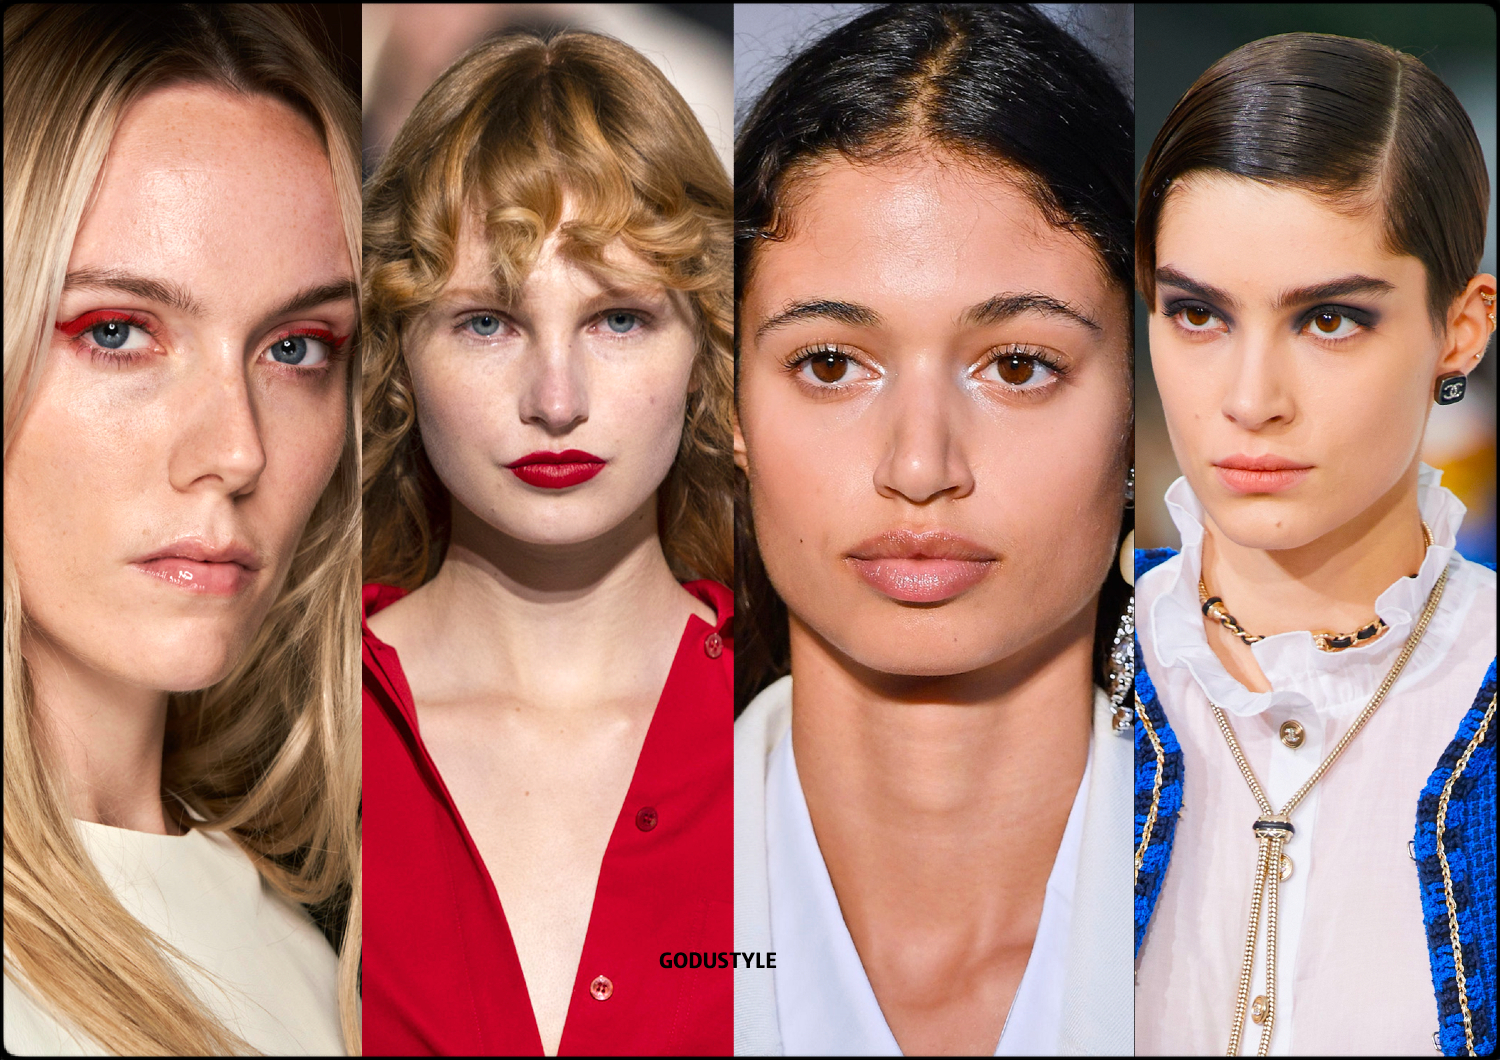 makeup-spring-summer-2021-trends-fashion-beauty-look-style-details-moda-maquillaje-tendencia-belleza-godustyle